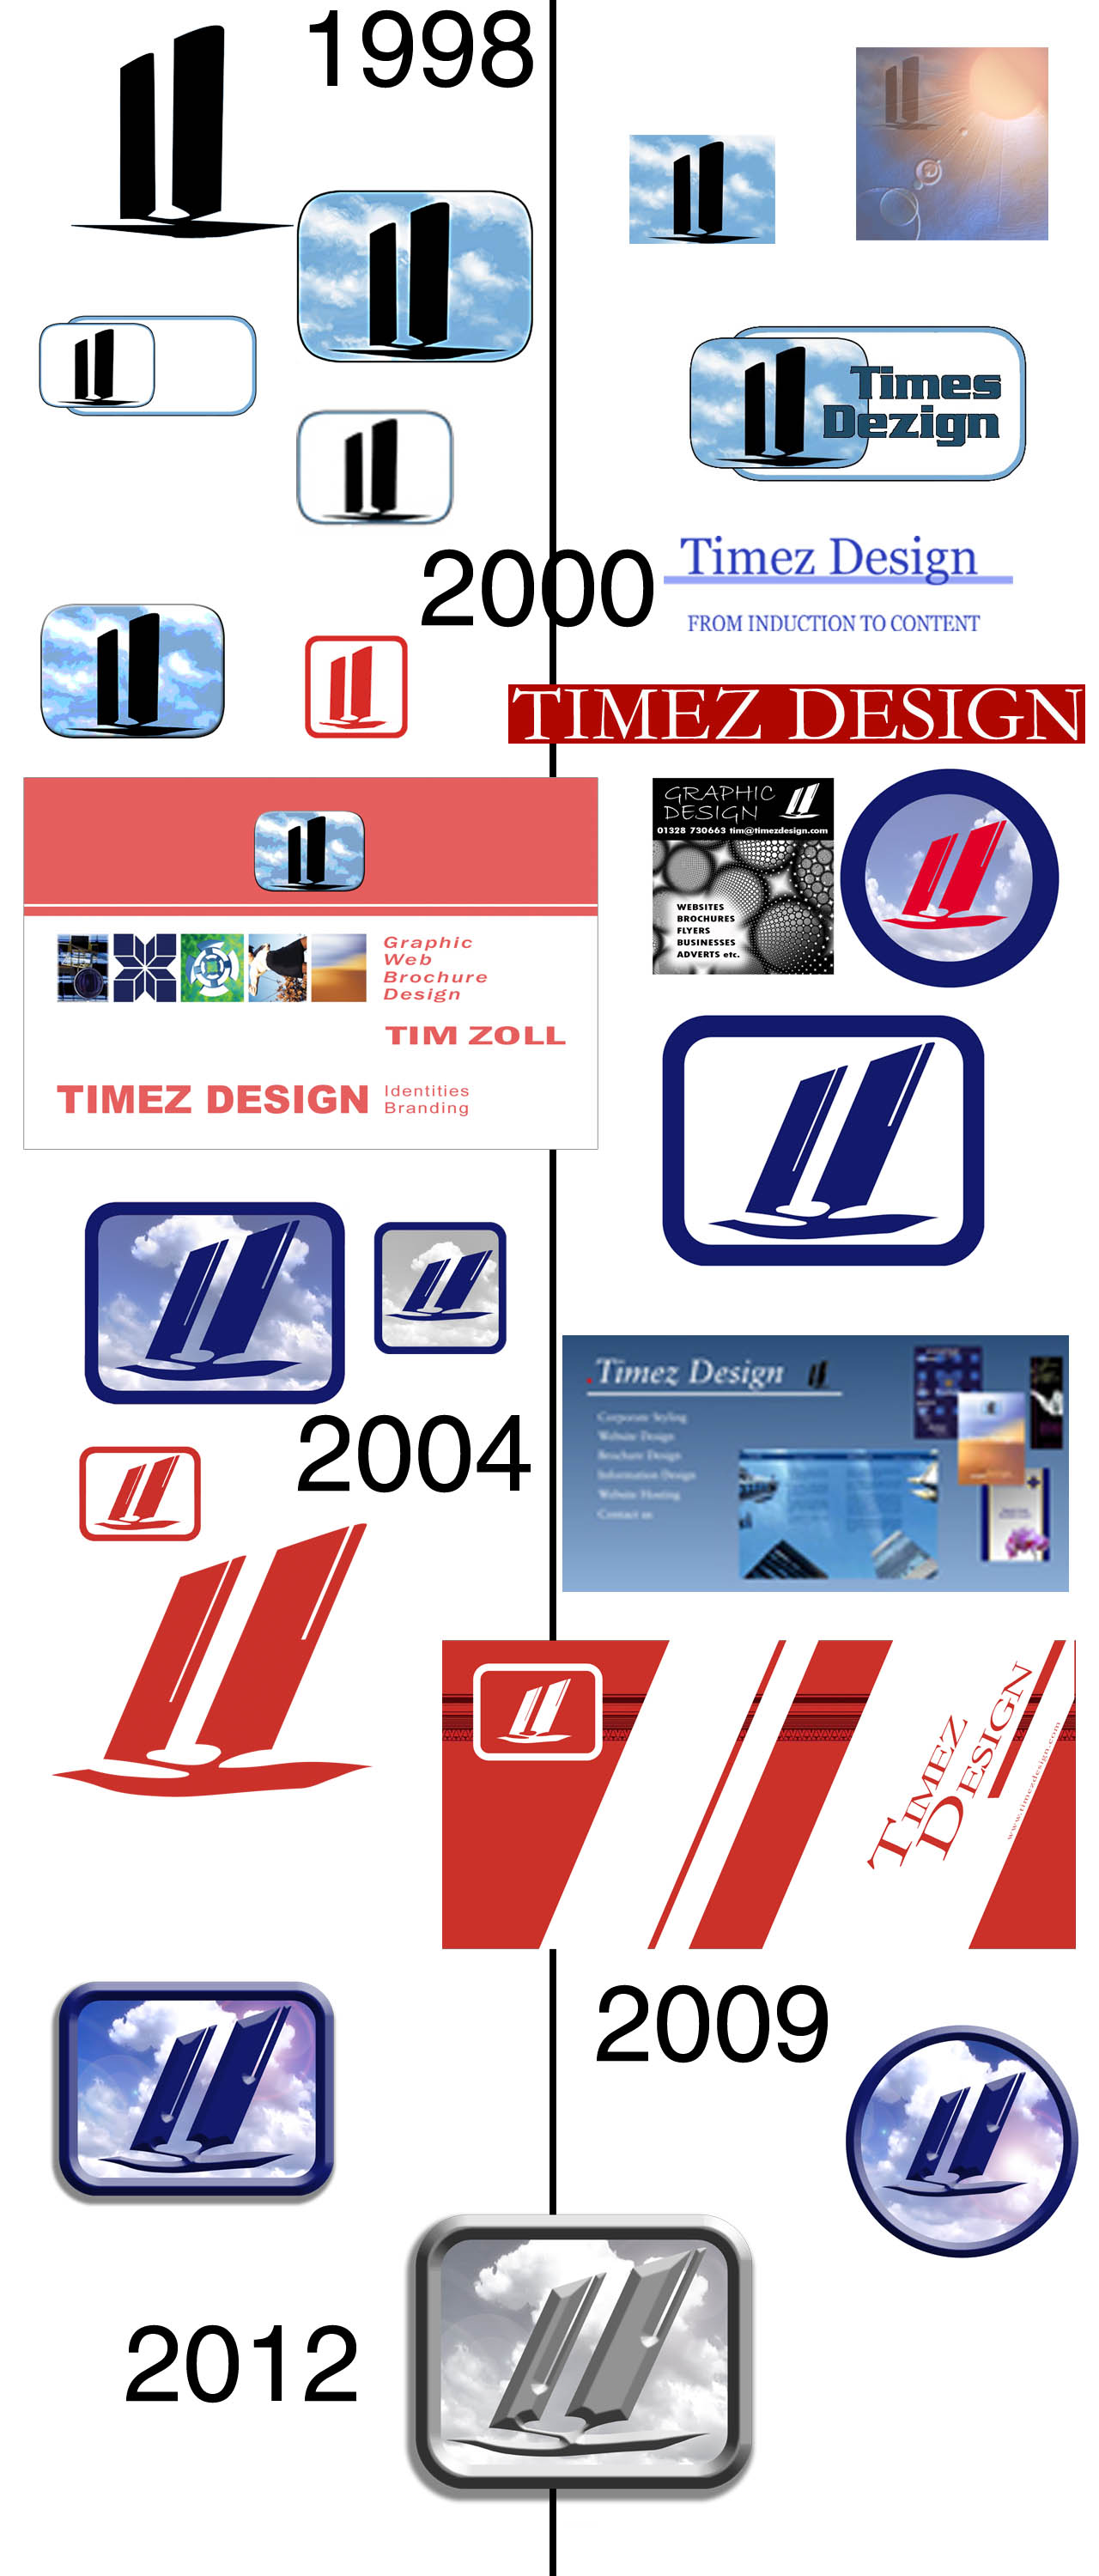 Timez Design logo timeline